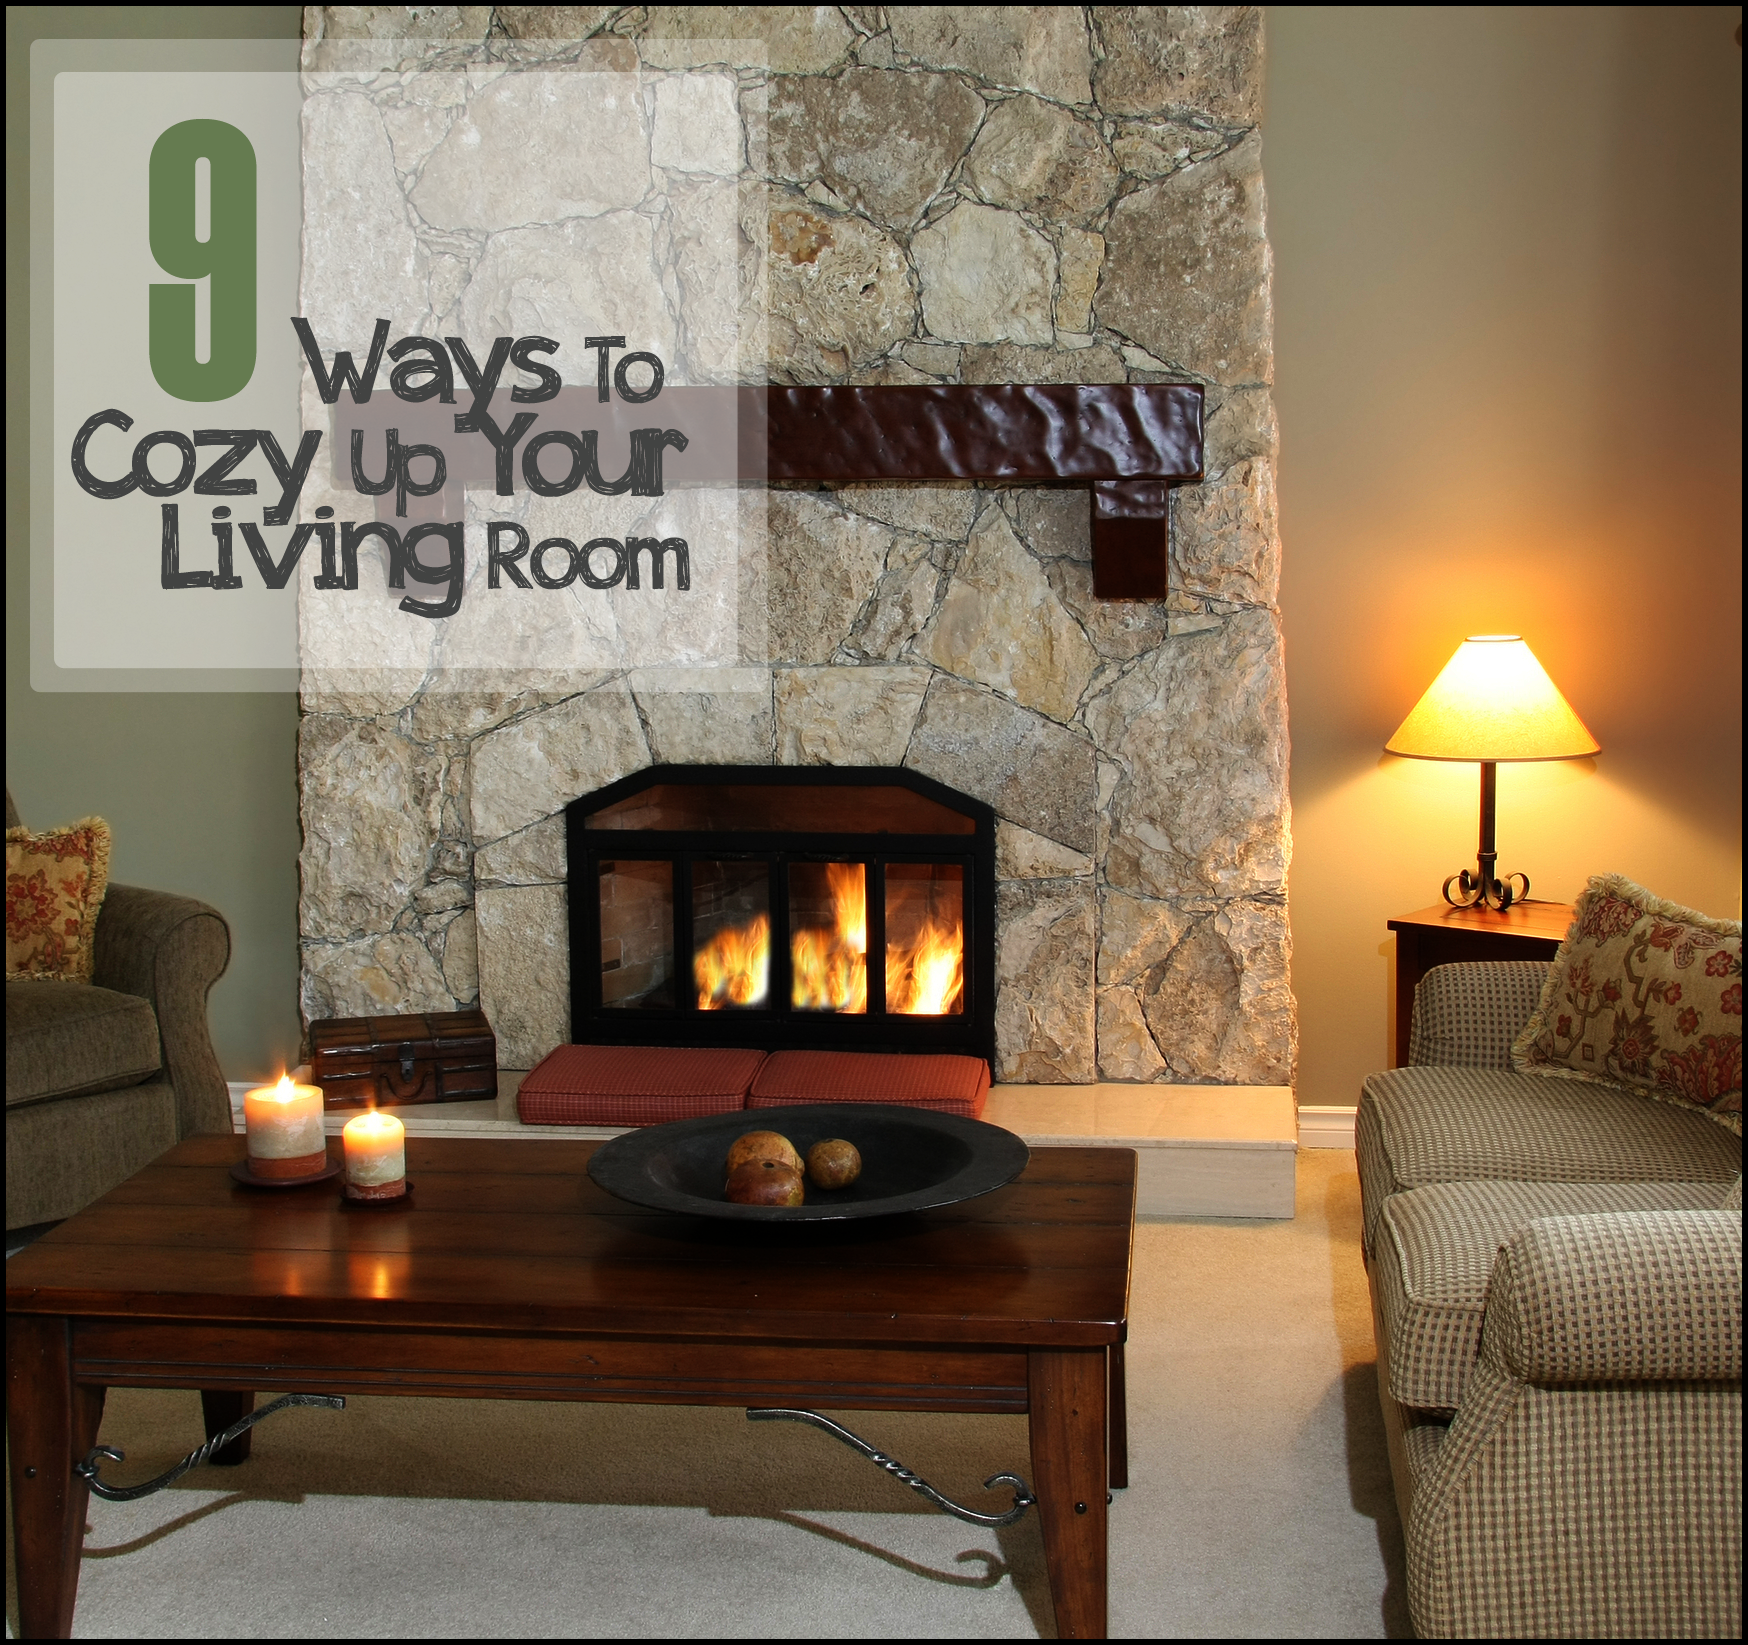 Your Living Room: 9 Ways To Cozy Up Your Living Room